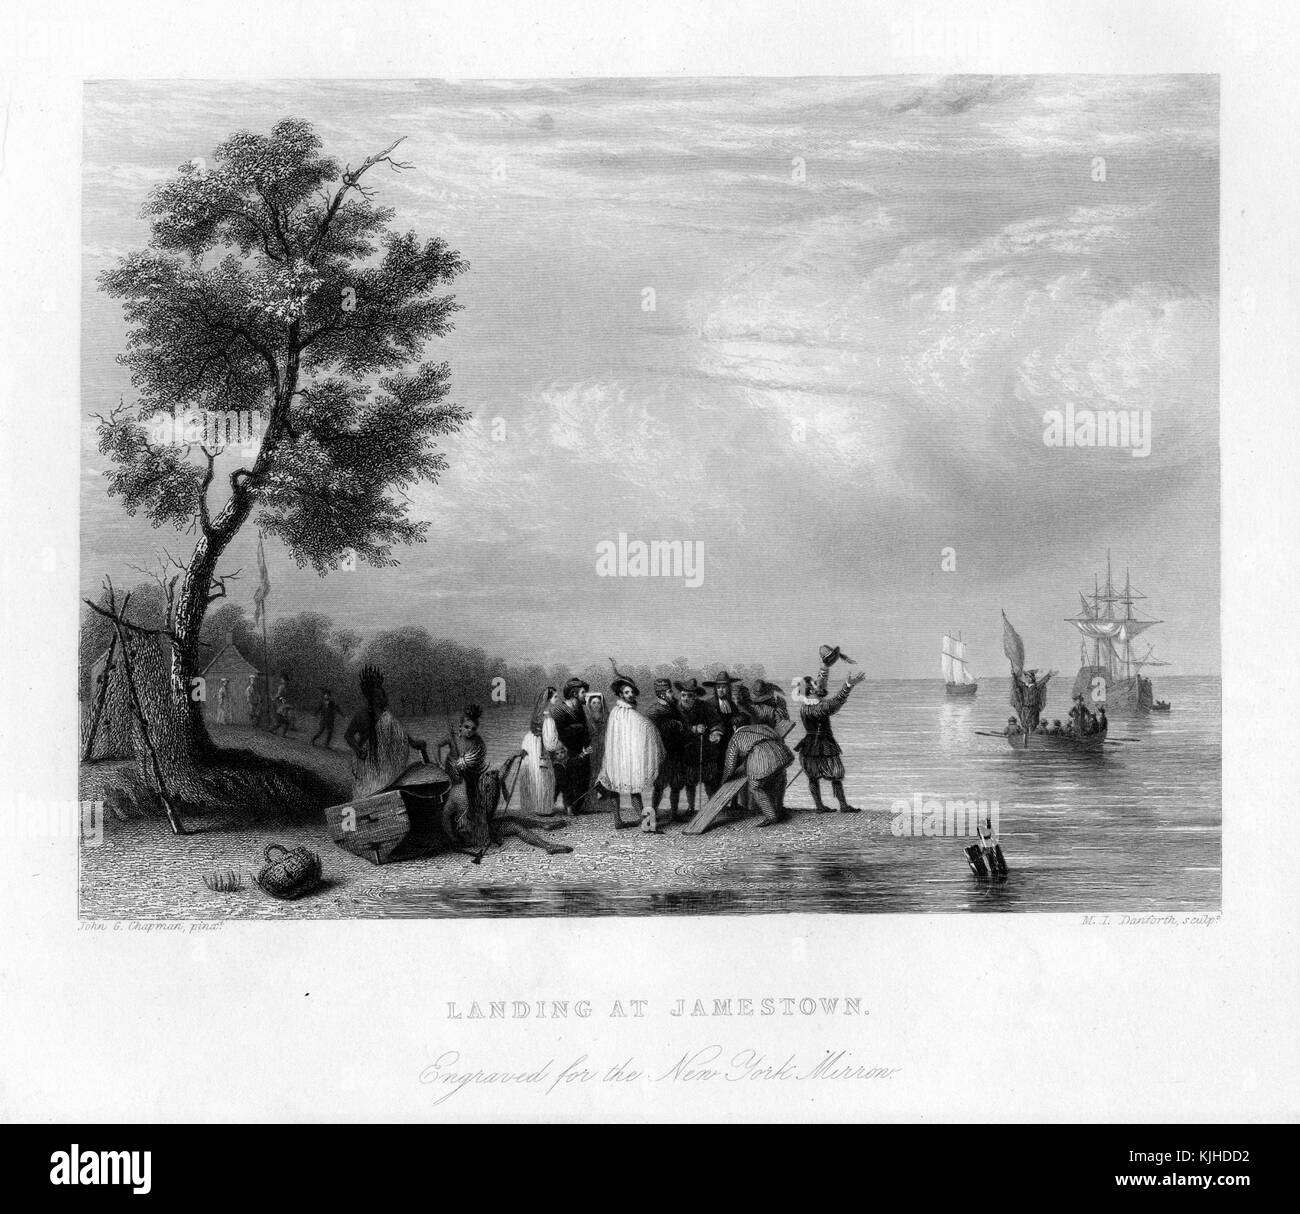 An engraving from a painting depicting members of the Virginia Company of London, England landing at Jamestown, - Stock Image